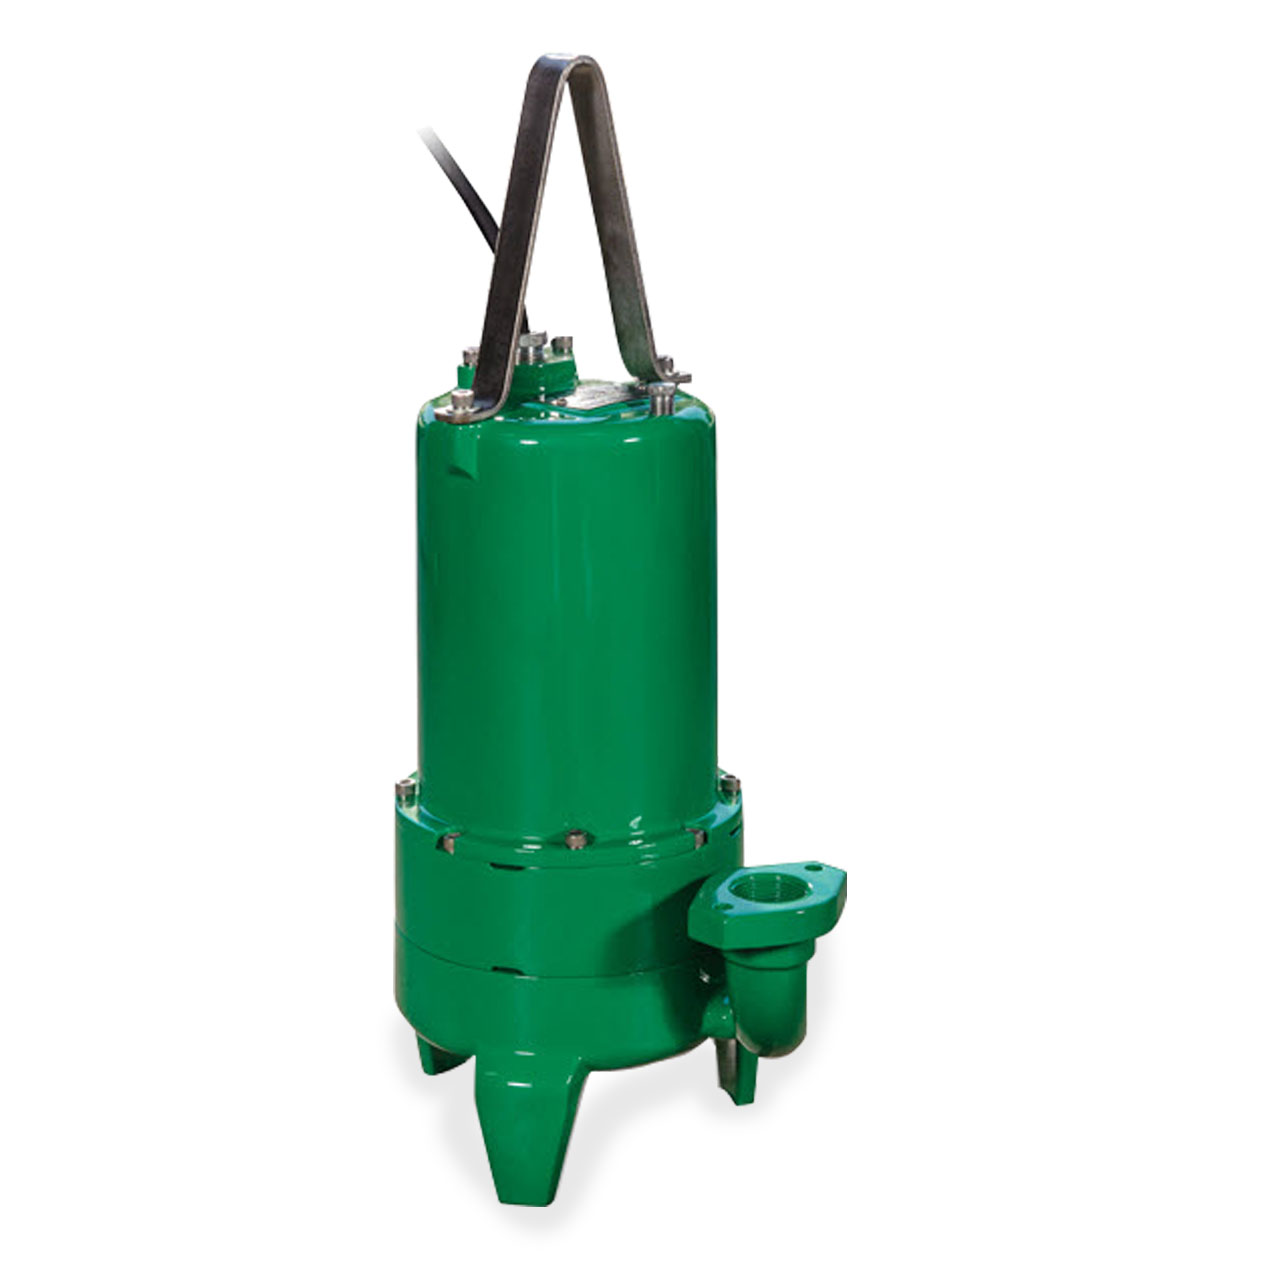 Myers - Myers VRS20M-21 VR2 Residential Submersible Grinder Pump 2.0 HP  230V 1 PH Manual 20' Cord #MYR28200D010